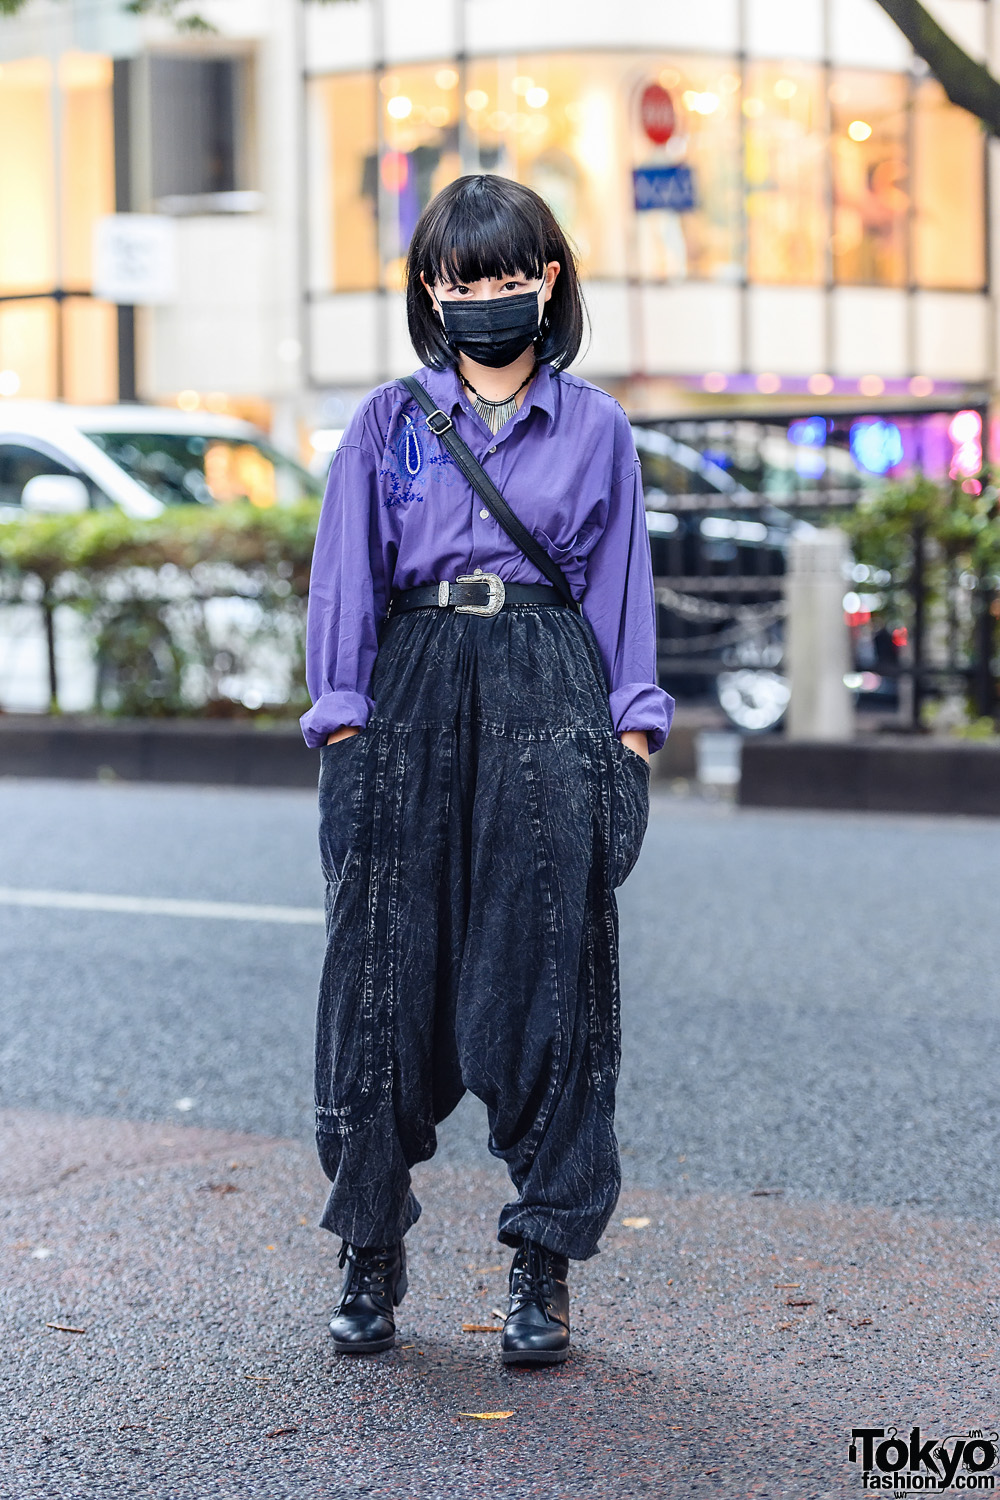 Harajuku Street Style w/ Face Mask, Embroidered Shirt, Drop Crotch Pants, Fringed Bag & Leather Boots